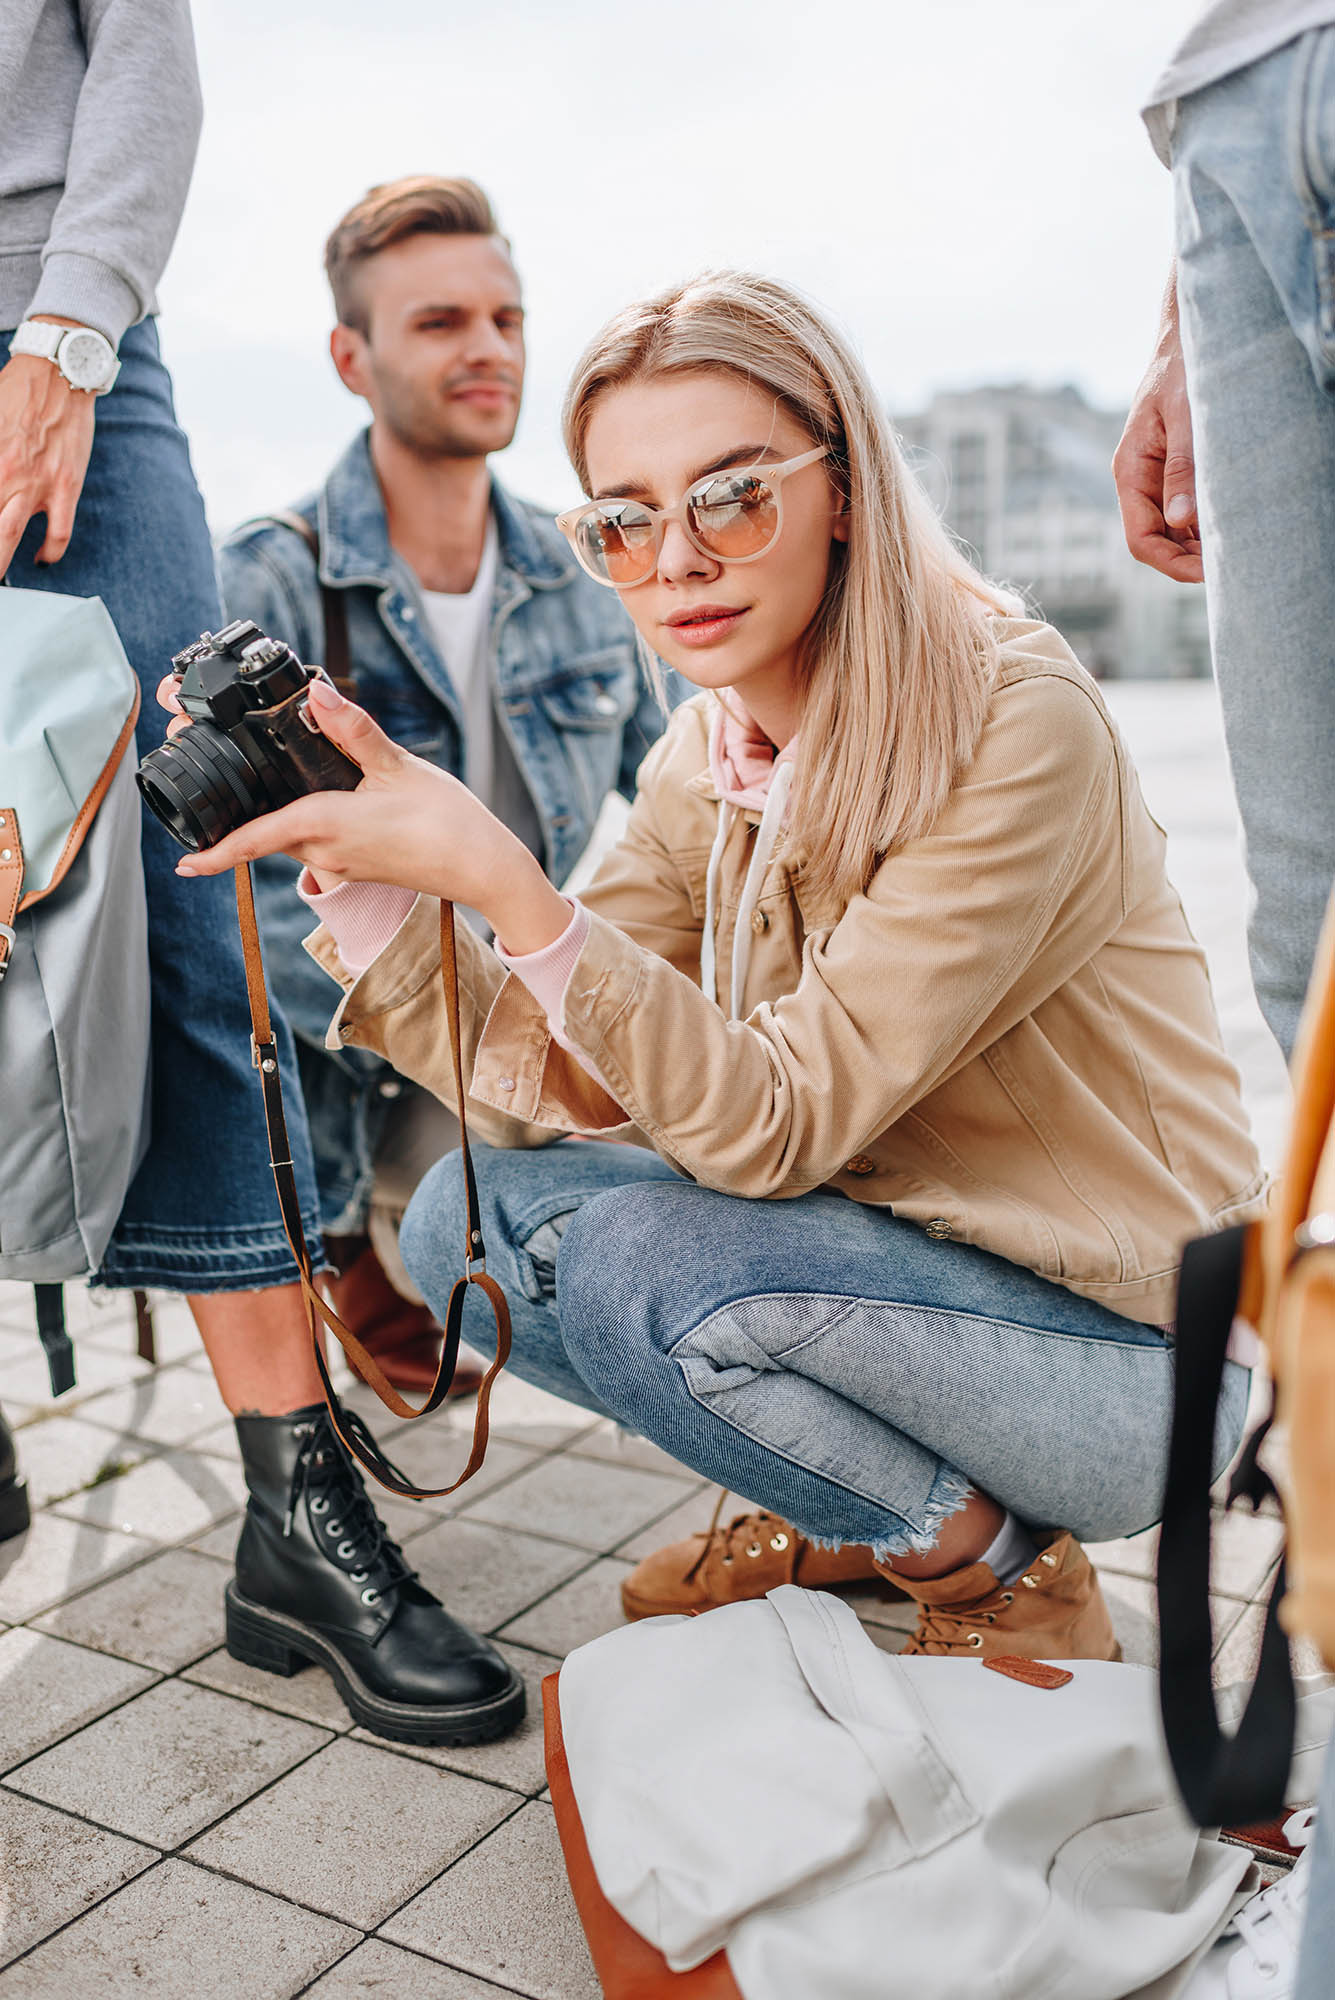 girl sunglasses crouched crowd camel jacket blonde hair blue jeans street photography portrait city people camera subject light how to tutorial guide